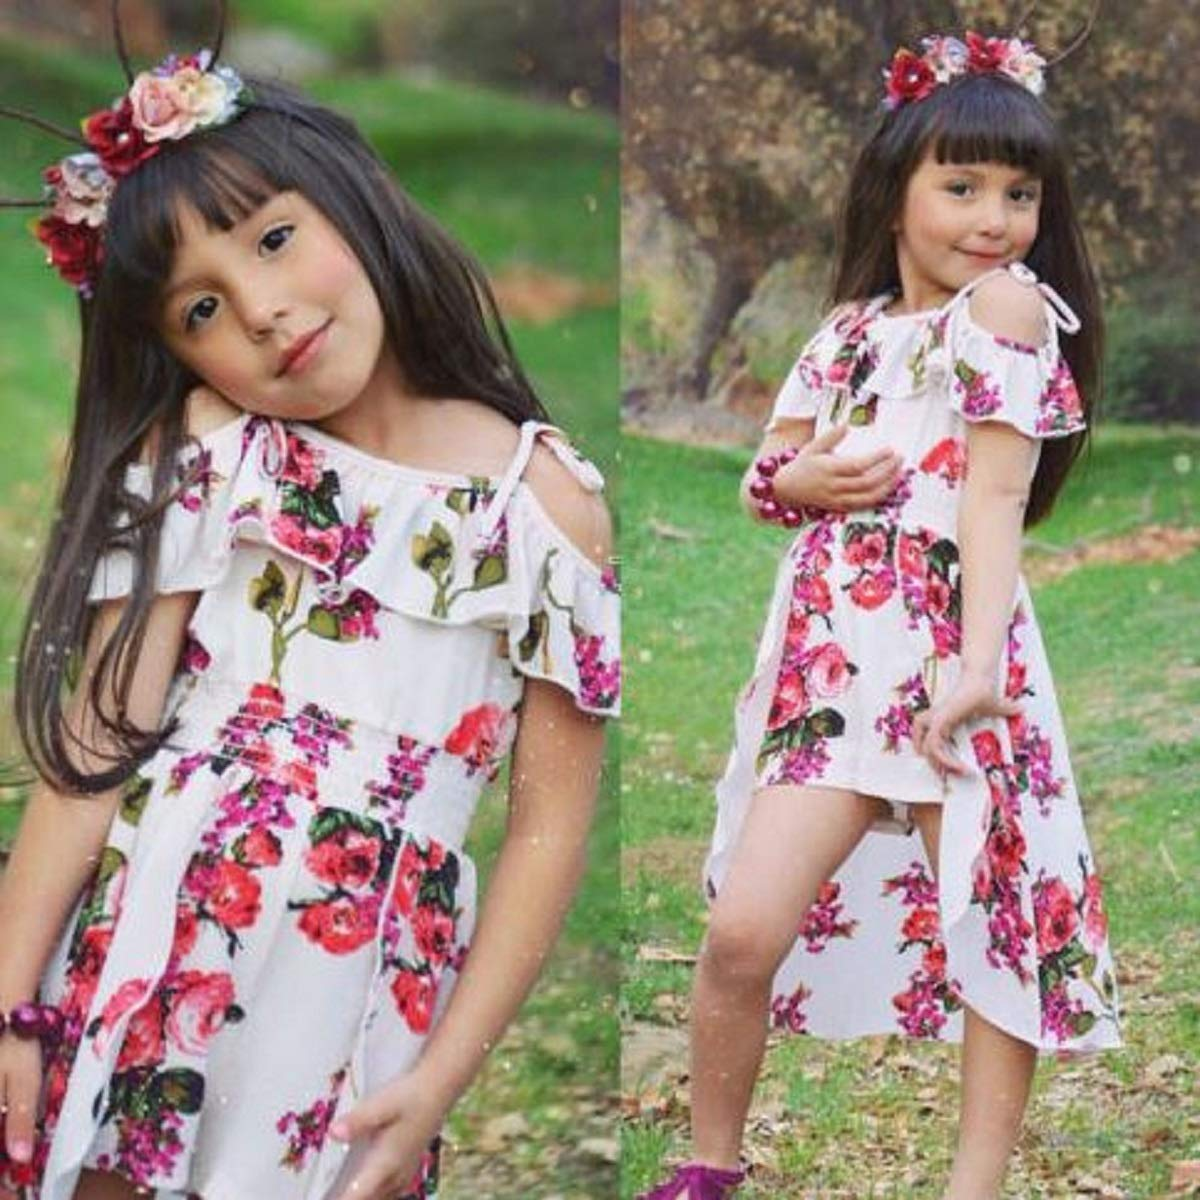 Yellow Preciashopping Floral Toddler Kids Baby Girl Clothes Romper Bodysuit Jumpsuit Outfits Dresses 2-3 Years